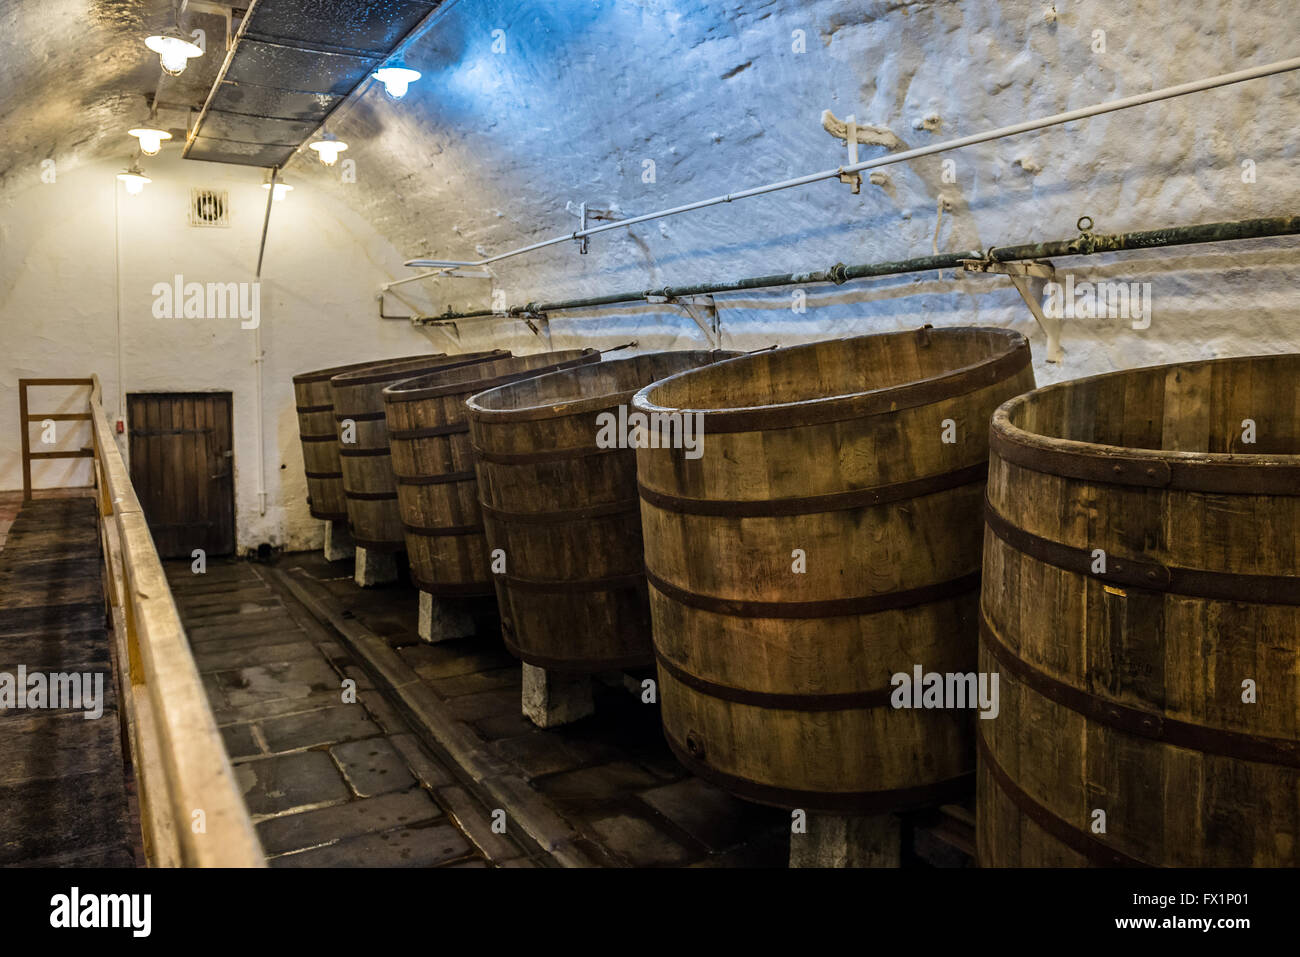 Wooden open fermentation barrels in the historical cellars of Pilsner Urquell Brewery in Pilsen city, Czech Republic - Stock Image